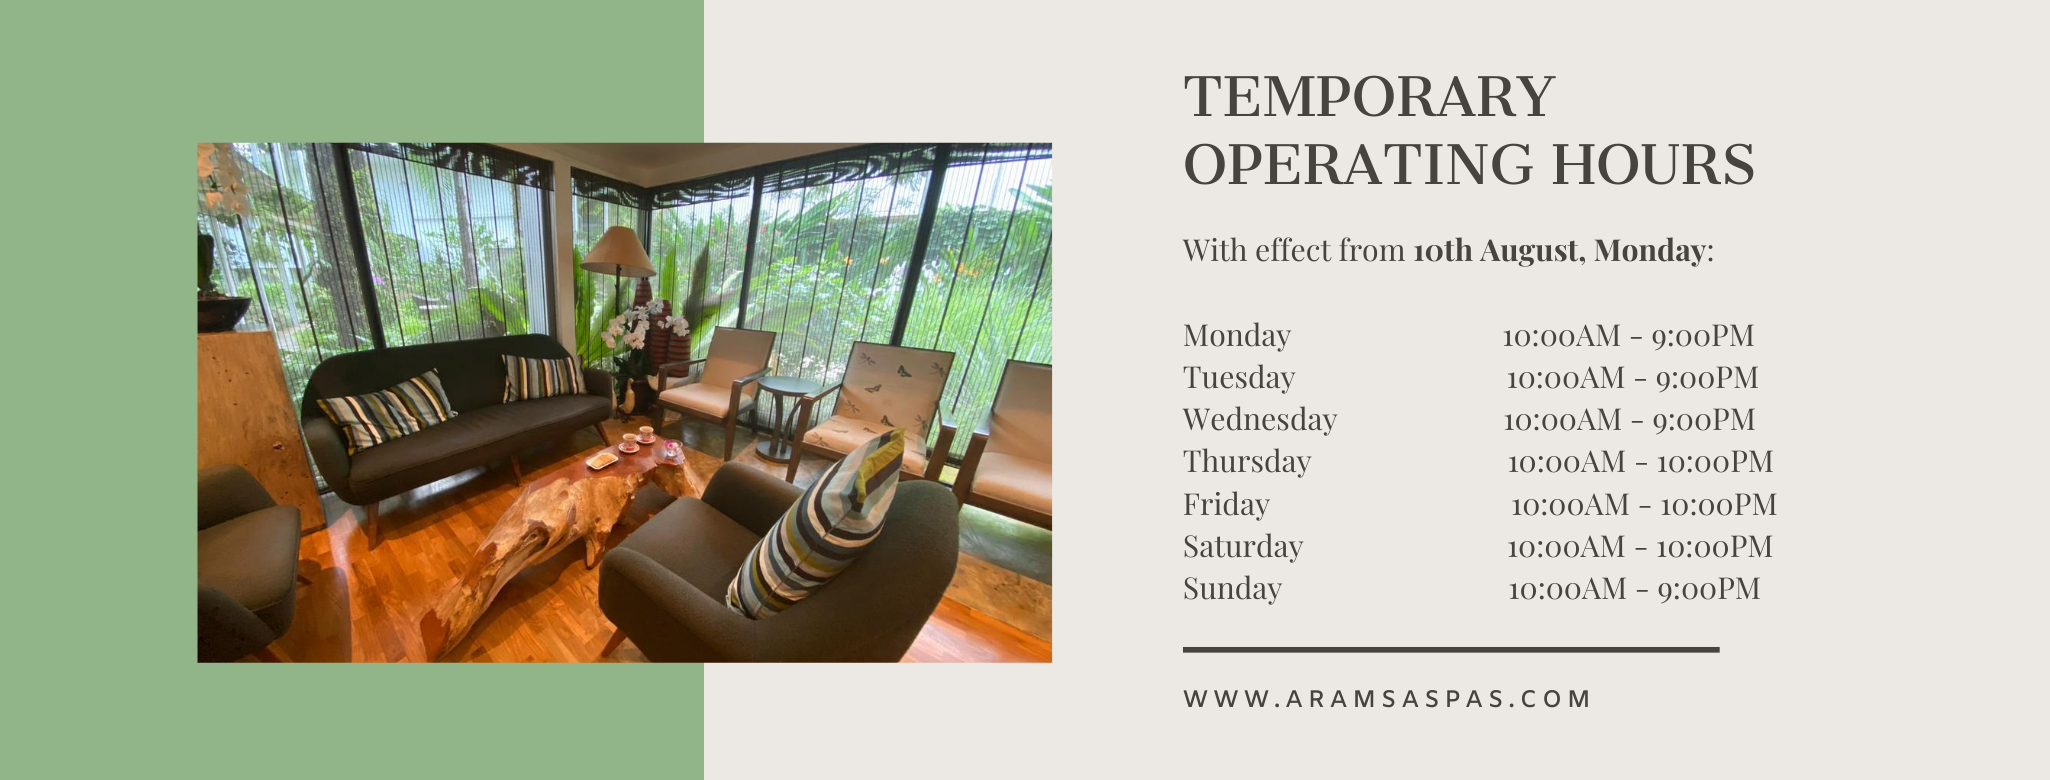 TEMPORARY OPERATING HOURS (AUGUST)